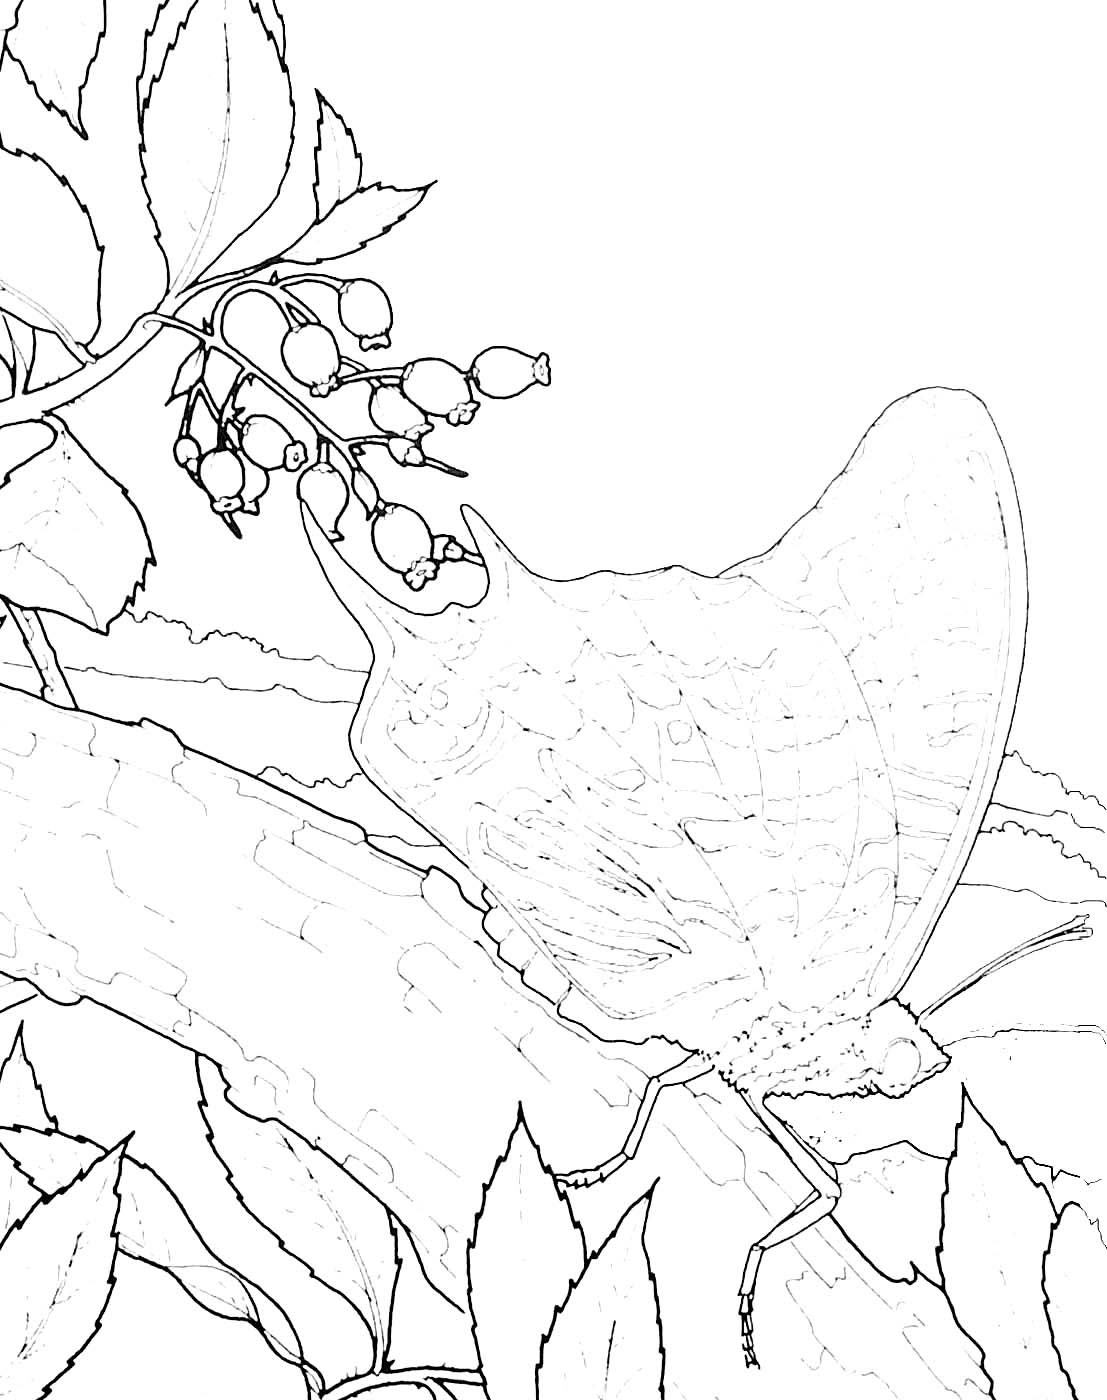 Coloriages campagne - Coloriage campagne ...